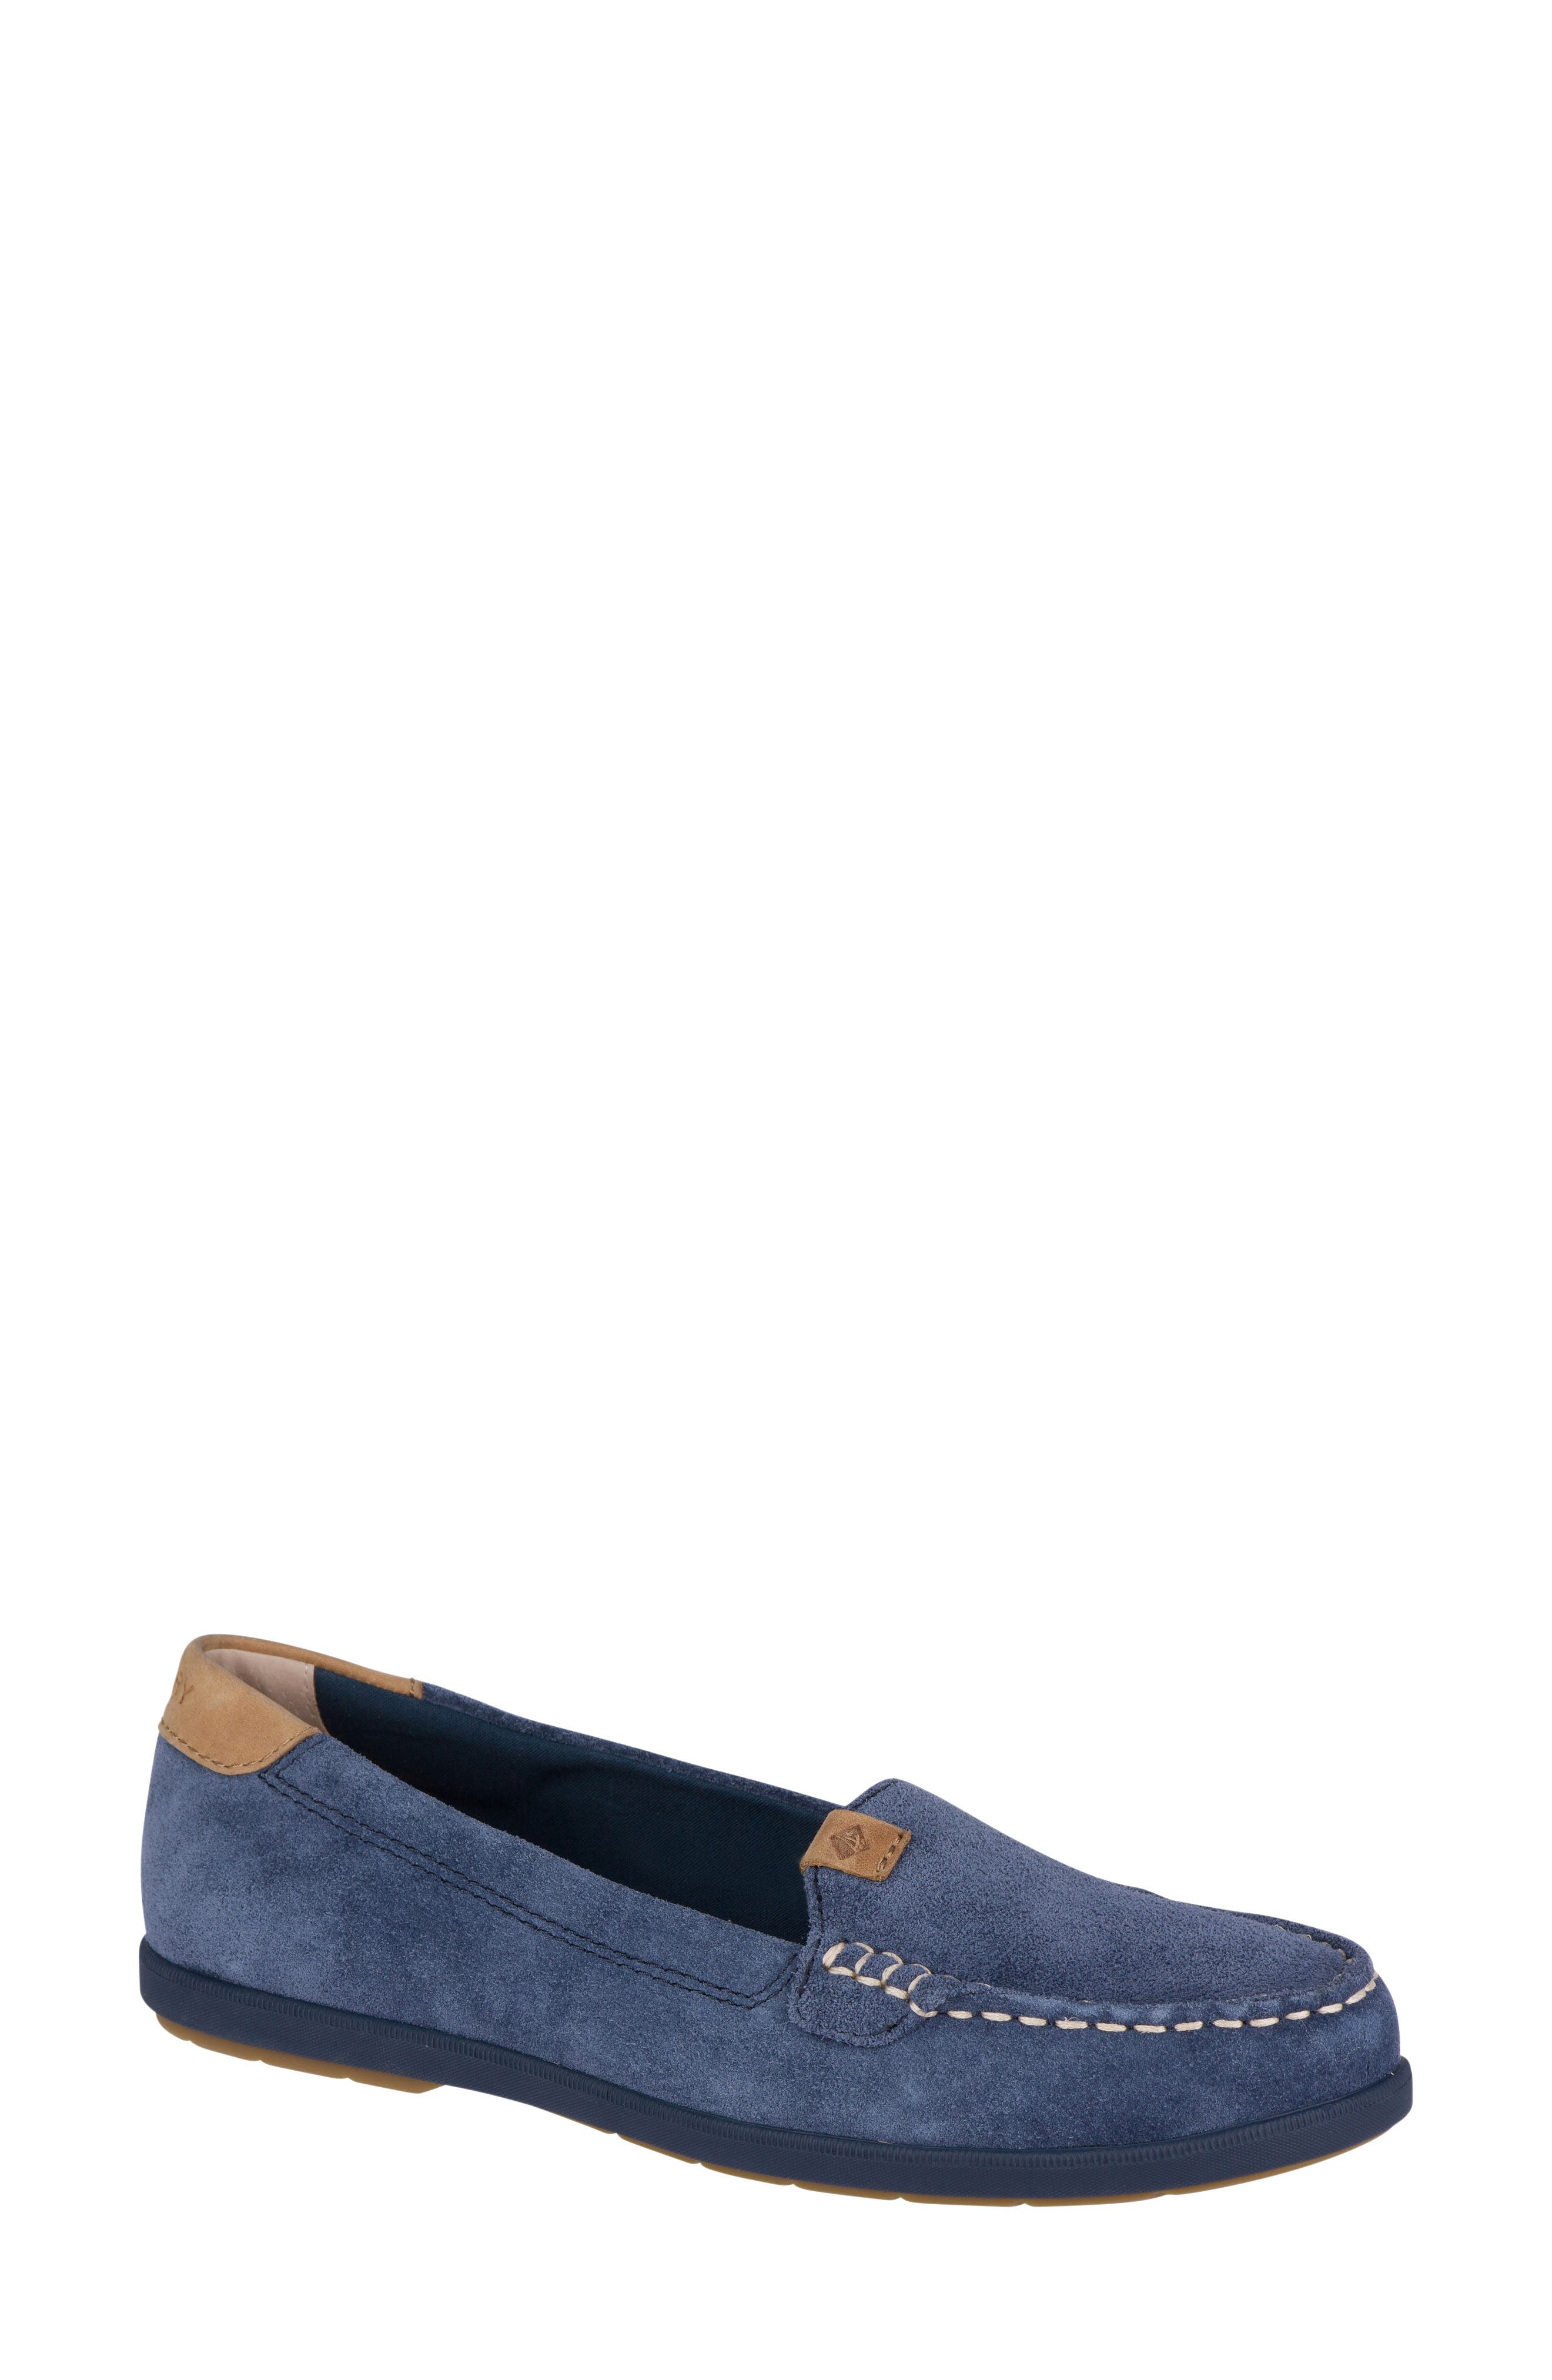 Coil Mia Loafer,                             Main thumbnail 1, color,